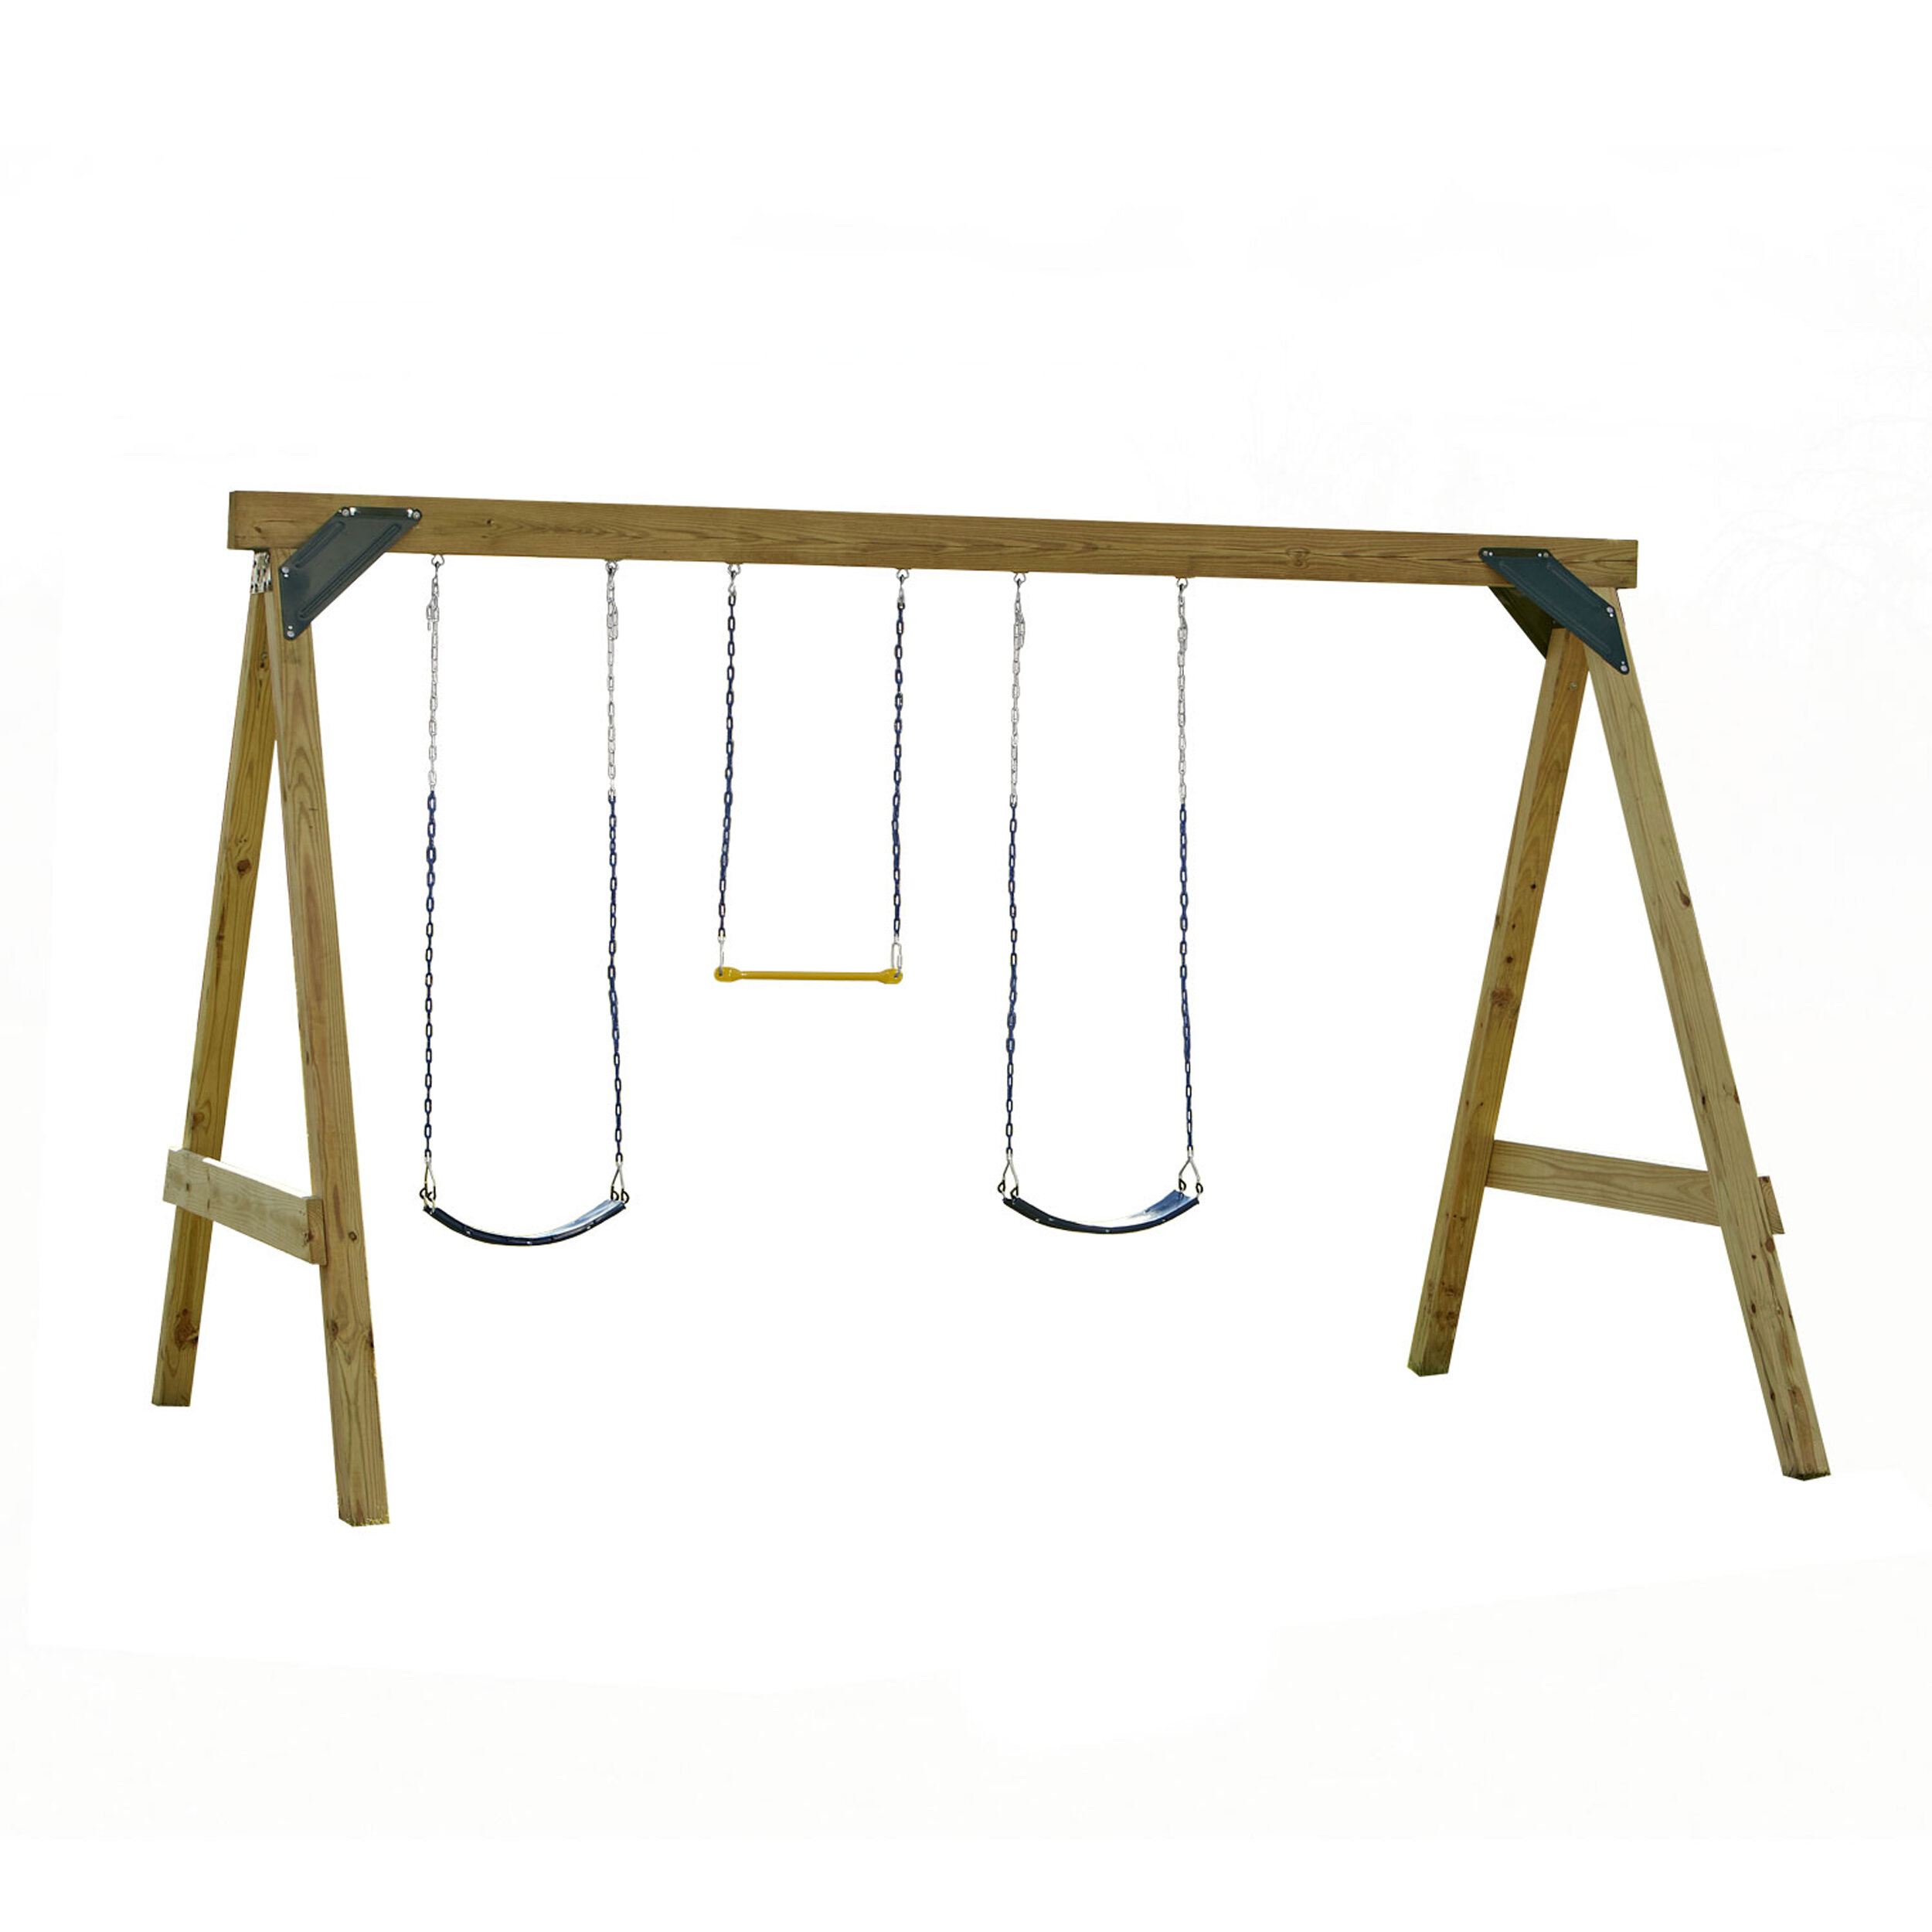 Swing N Slide Ready To Build Custom Scout Swing Set Hardware Kit